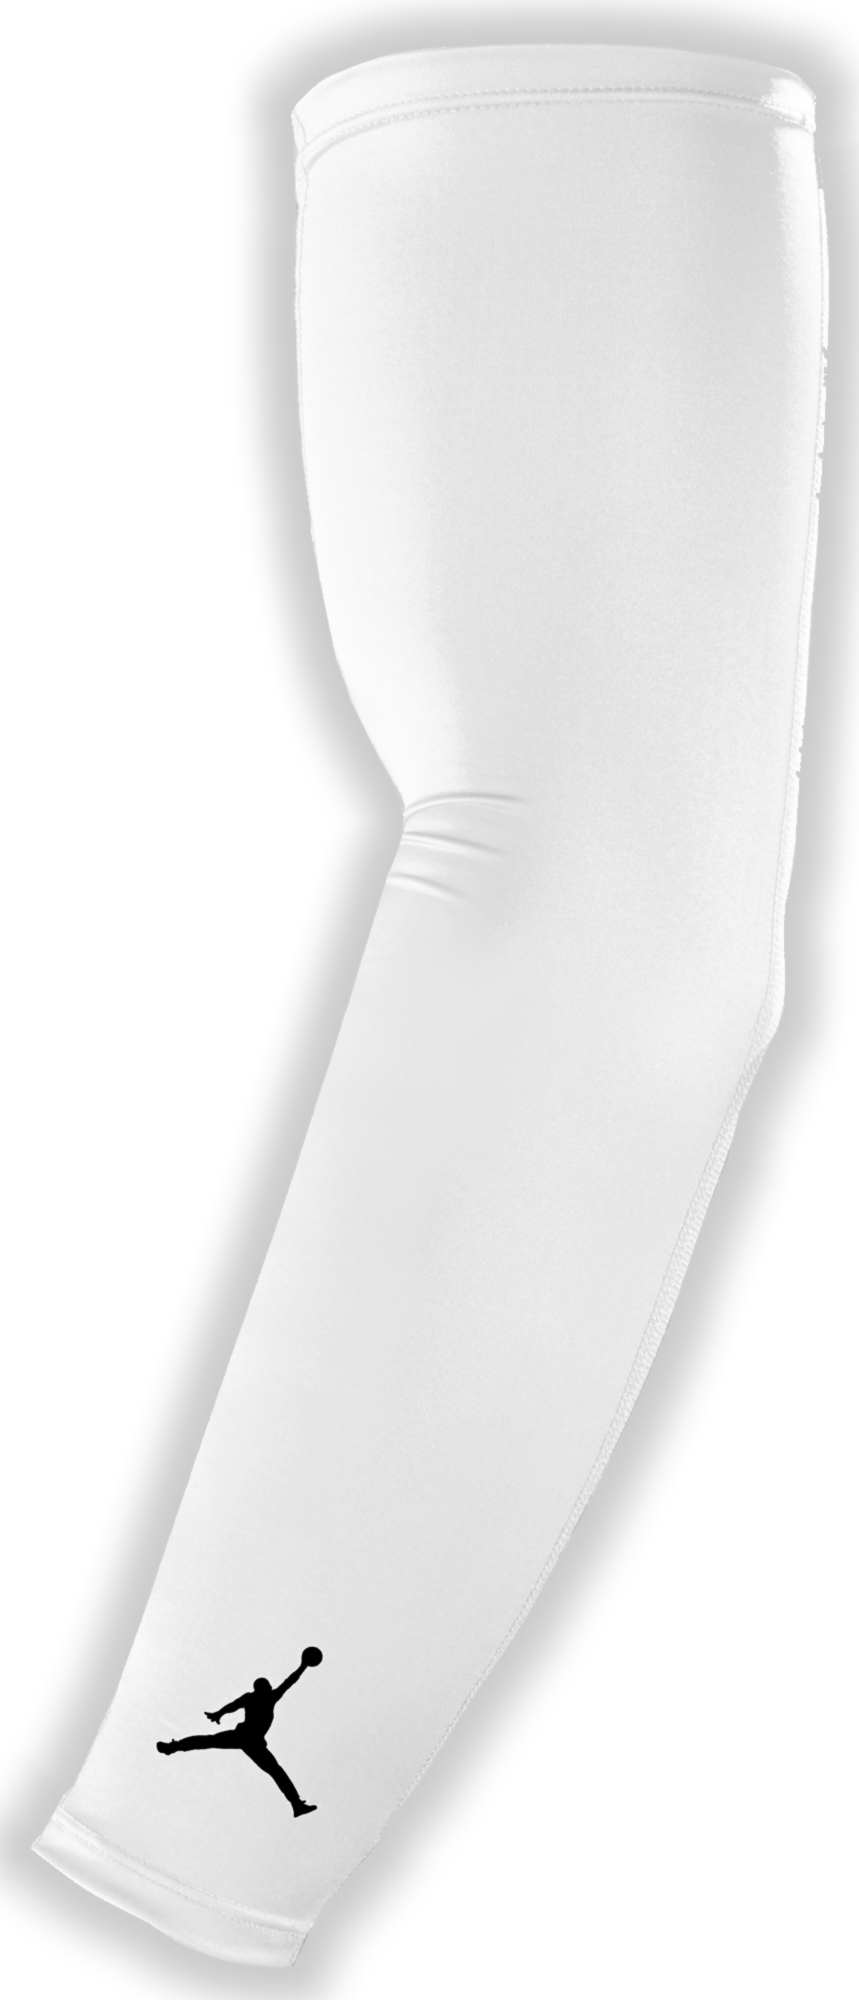 Nike Jordan Shooter Sleeves - White/Black